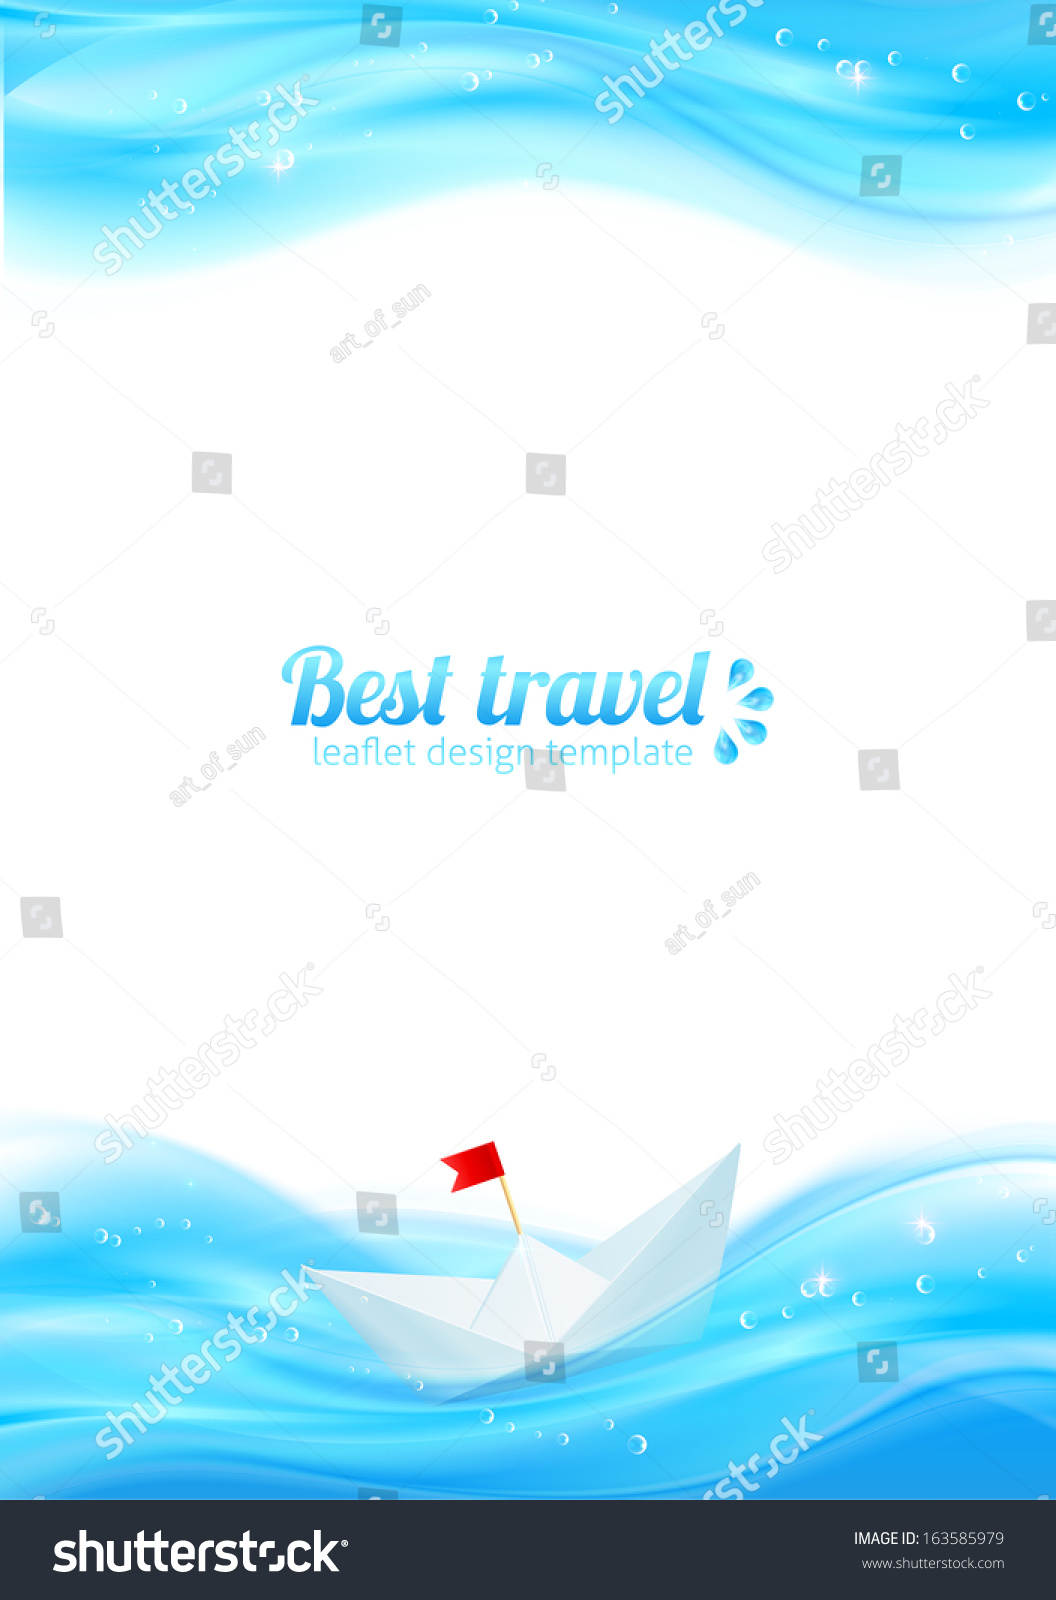 Abstract Realistic Water With Paper Boat Design Template For Your Leaflet